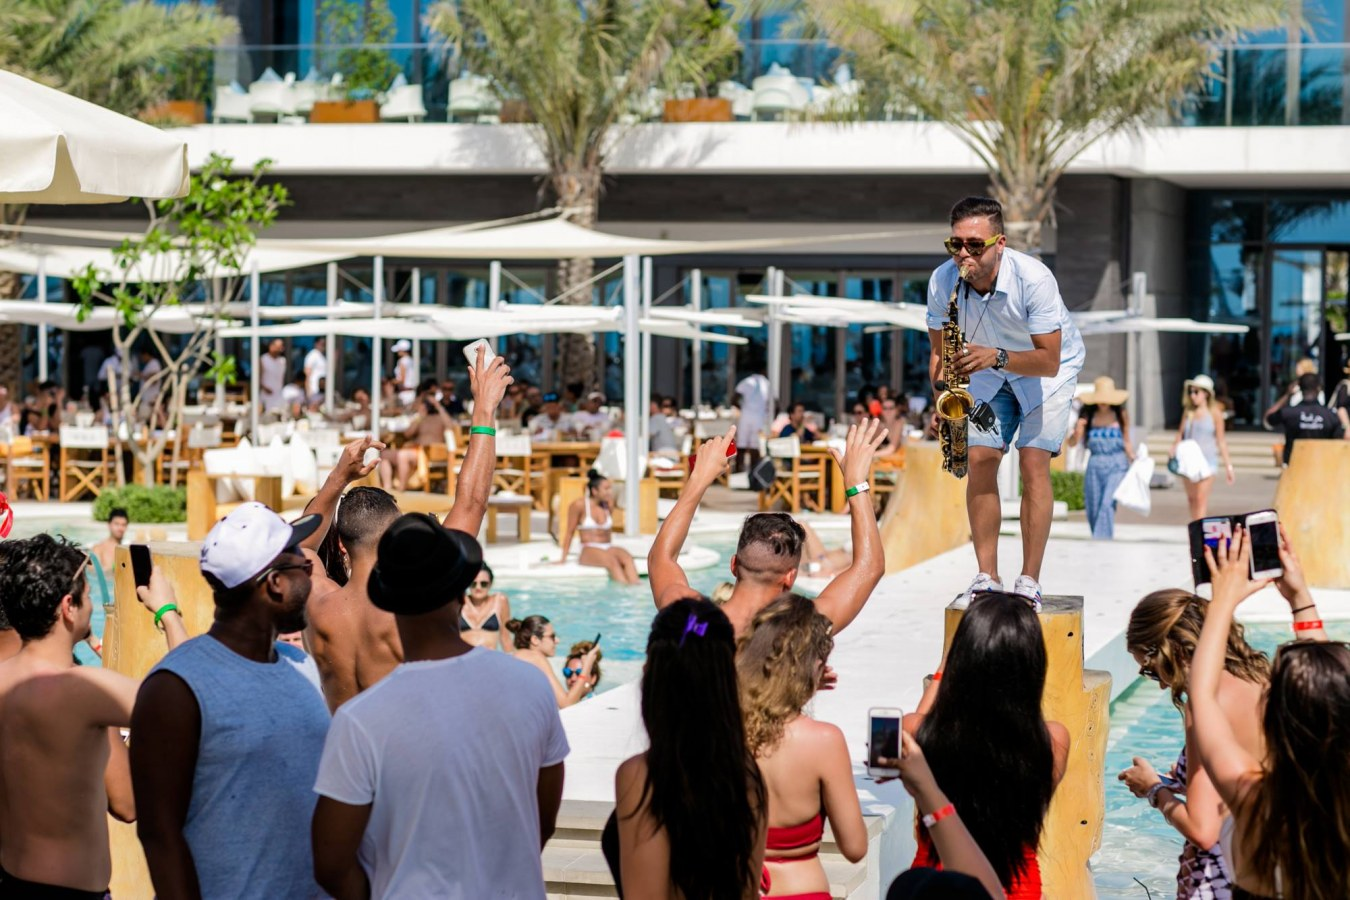 A Party At Nikki Beach Image Courtesy Best Clubs In Dubai